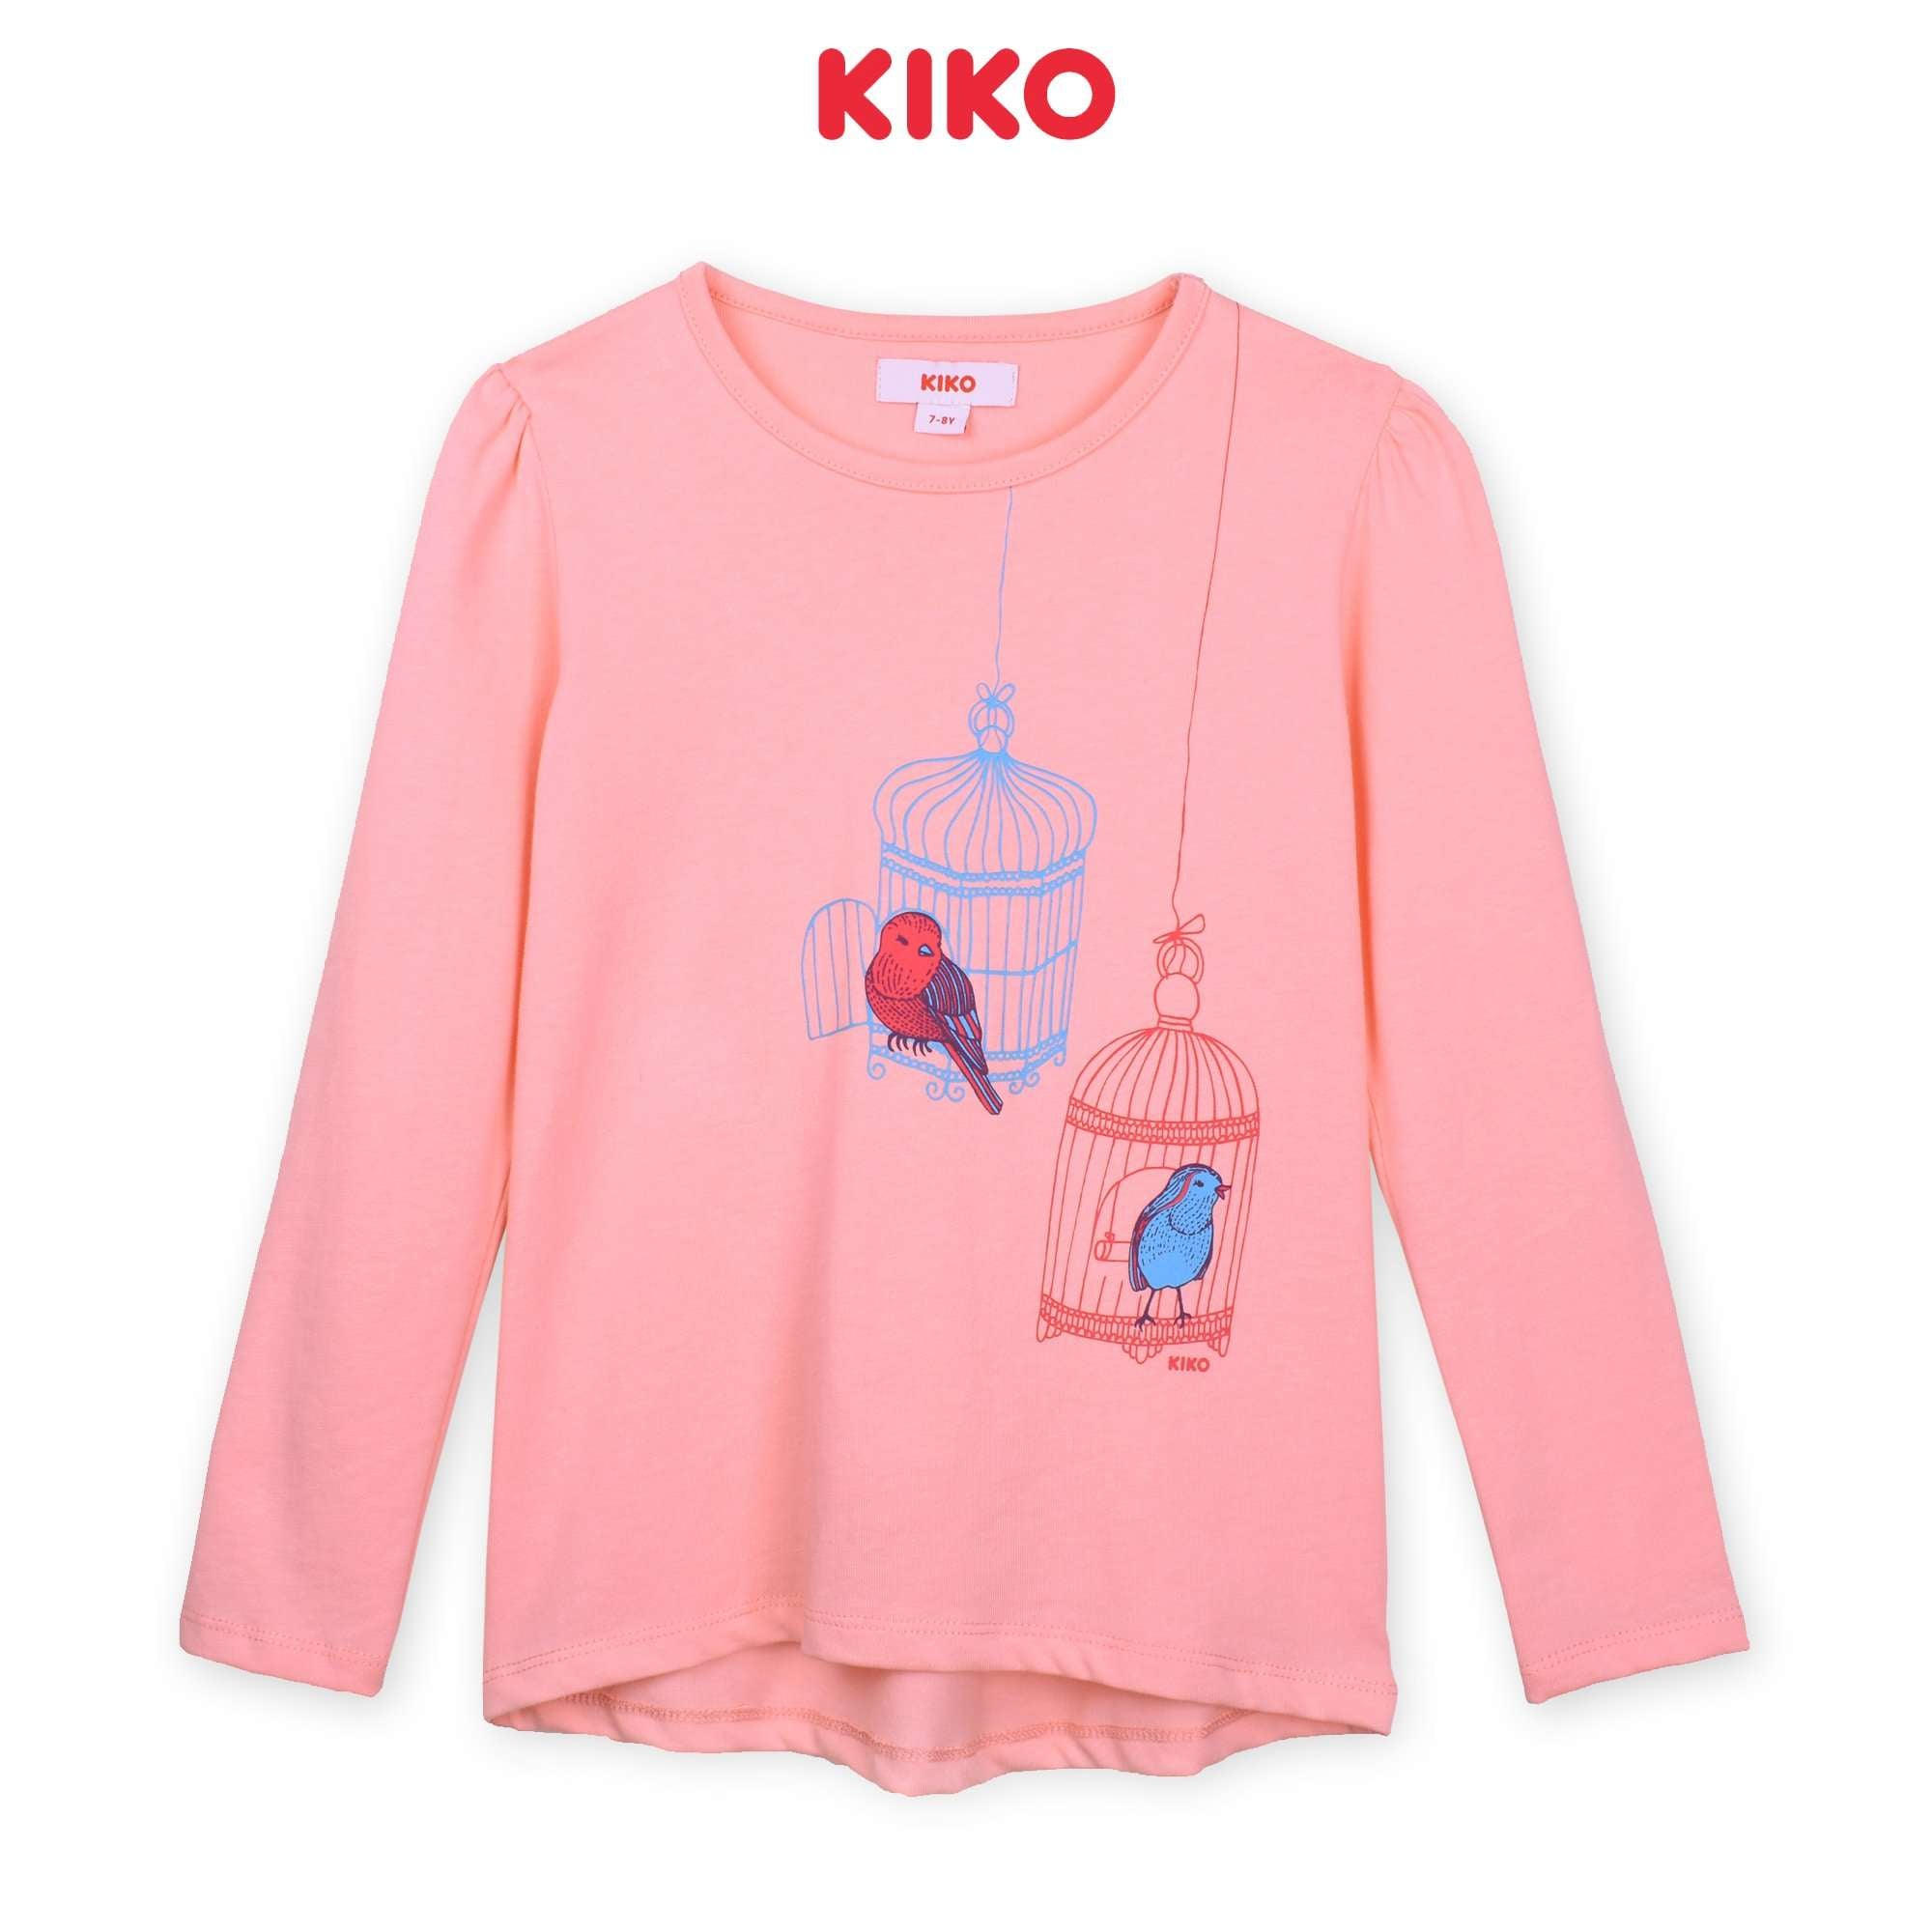 KIKO Girl Long Sleeve Tee - Pink K925103-1375-P5 : Buy KIKO online at CMG.MY